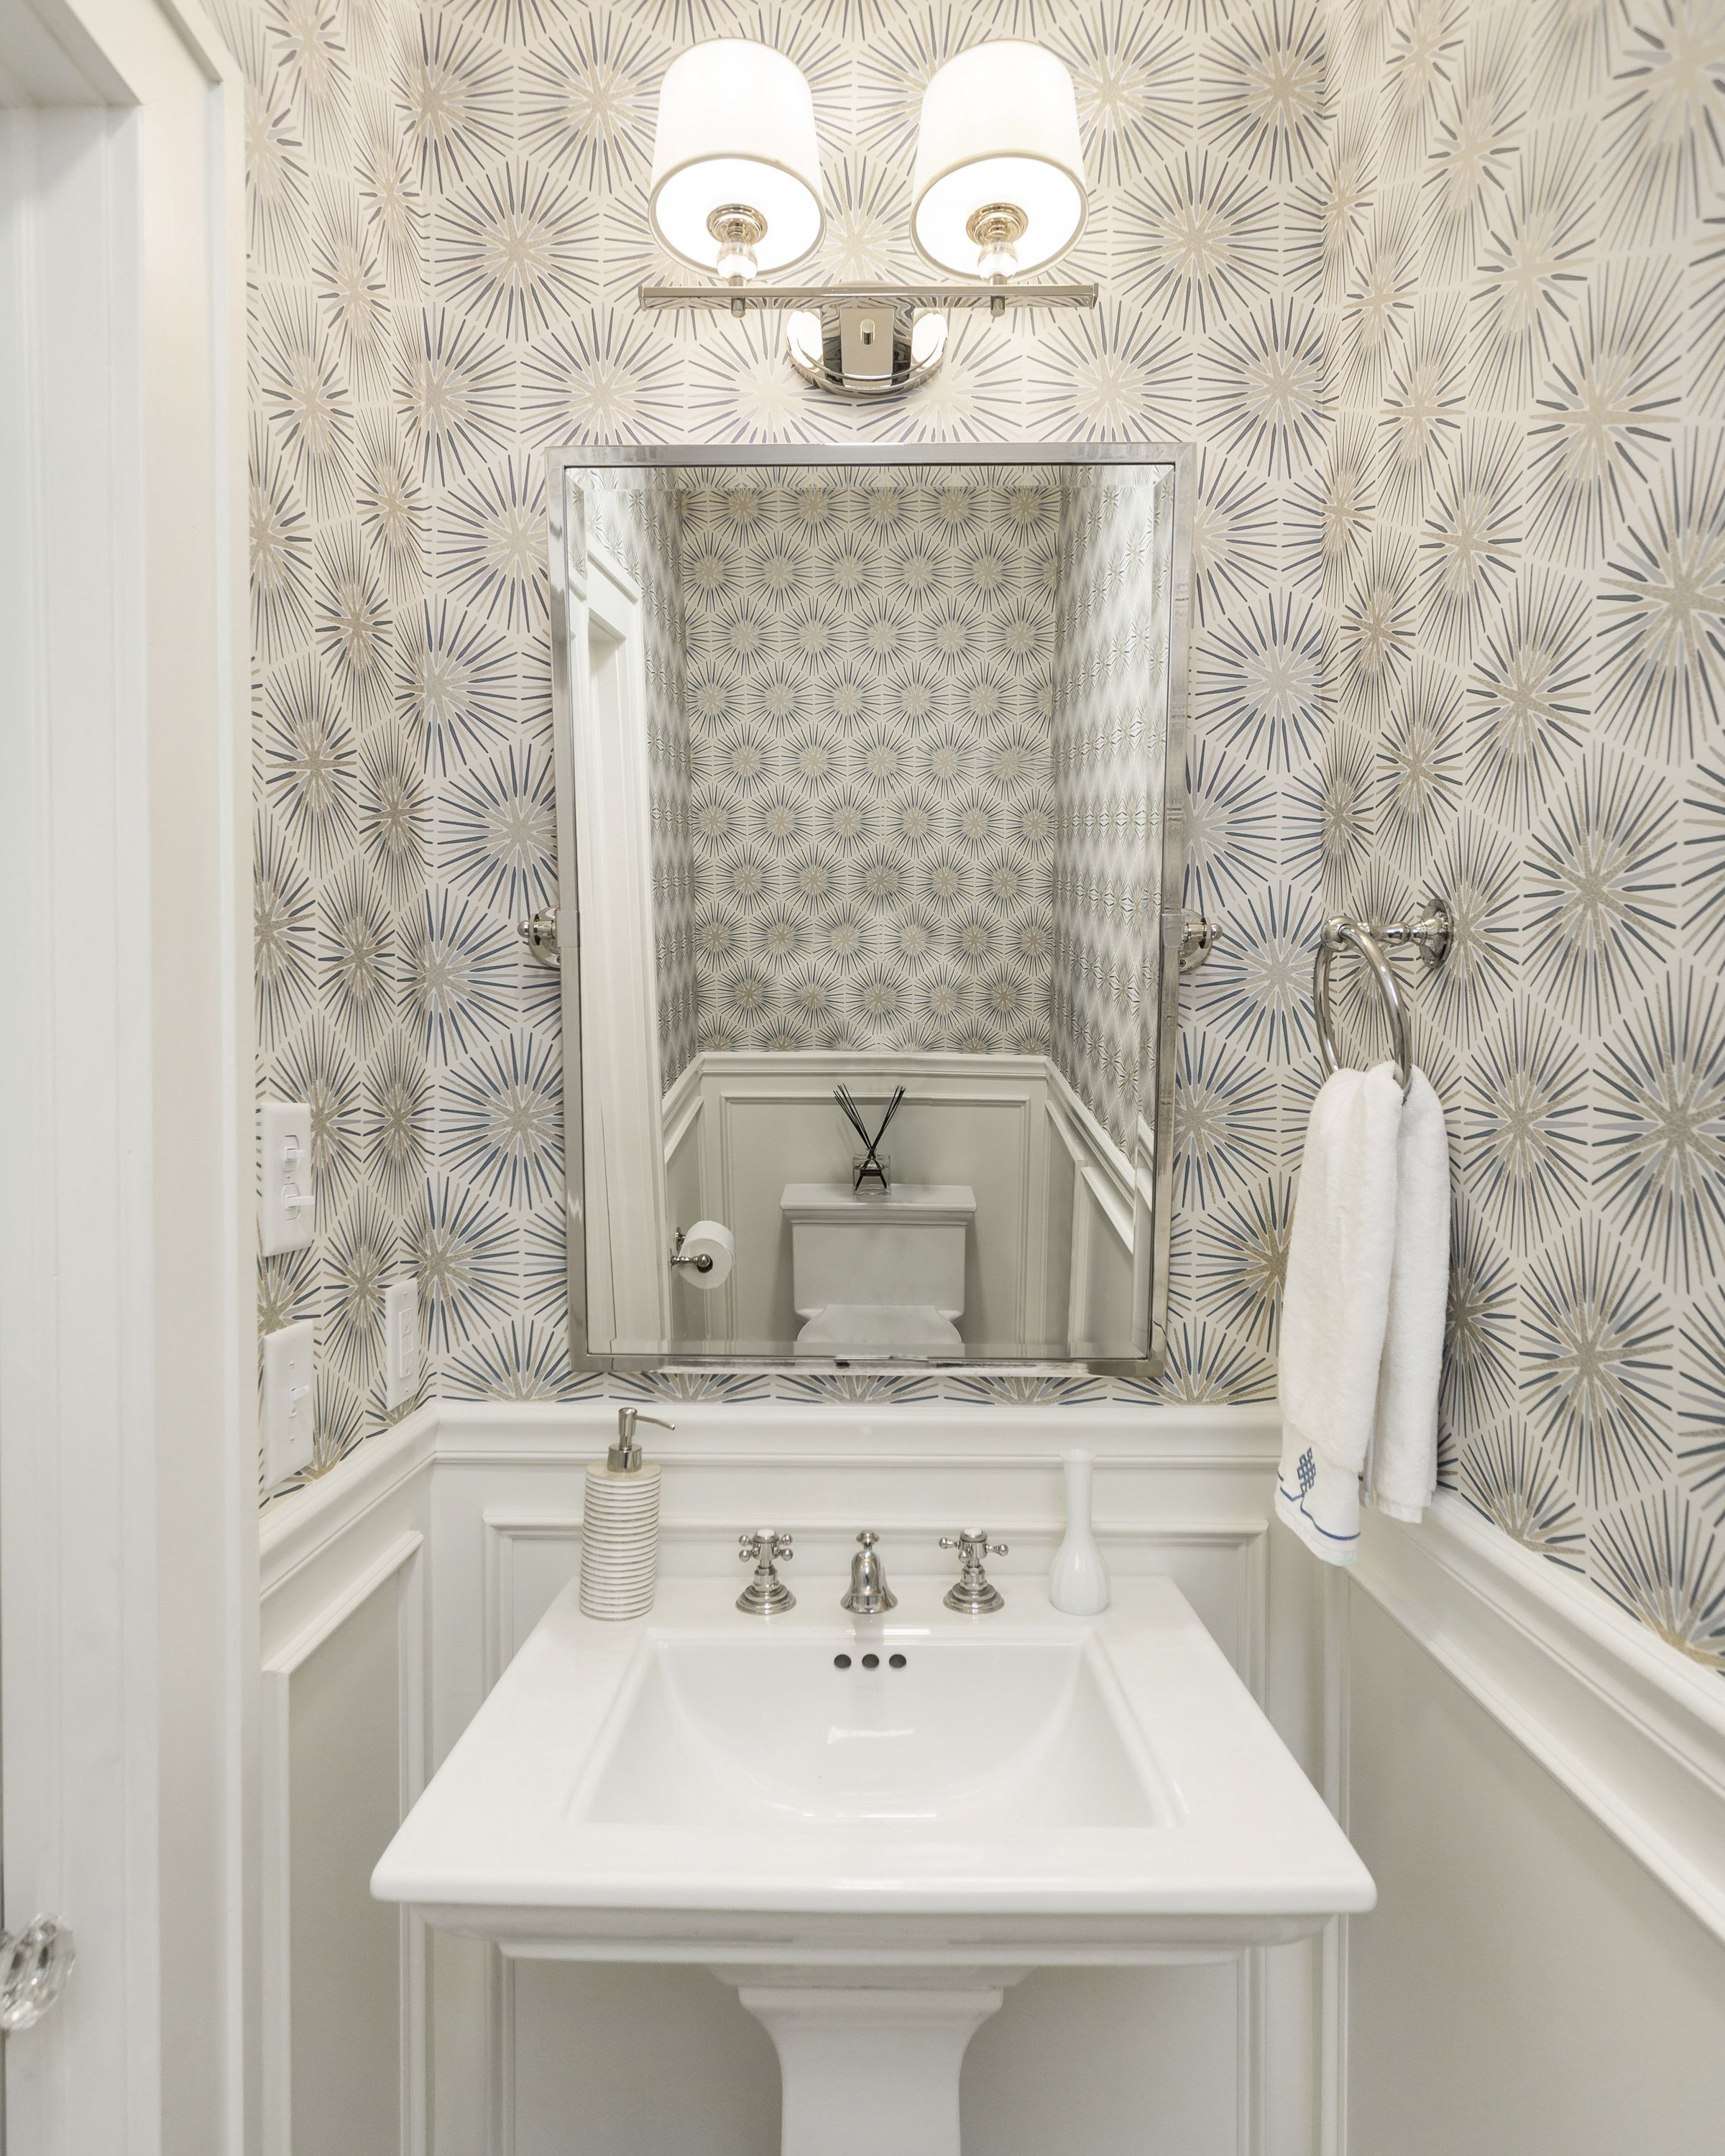 design by camden grace interiors zoffany wallpaper spark wallpaper blue and white wal new bathroom wallpaper gray wallpaper bathroom trendy bathroom tiles wallpaper bathroom